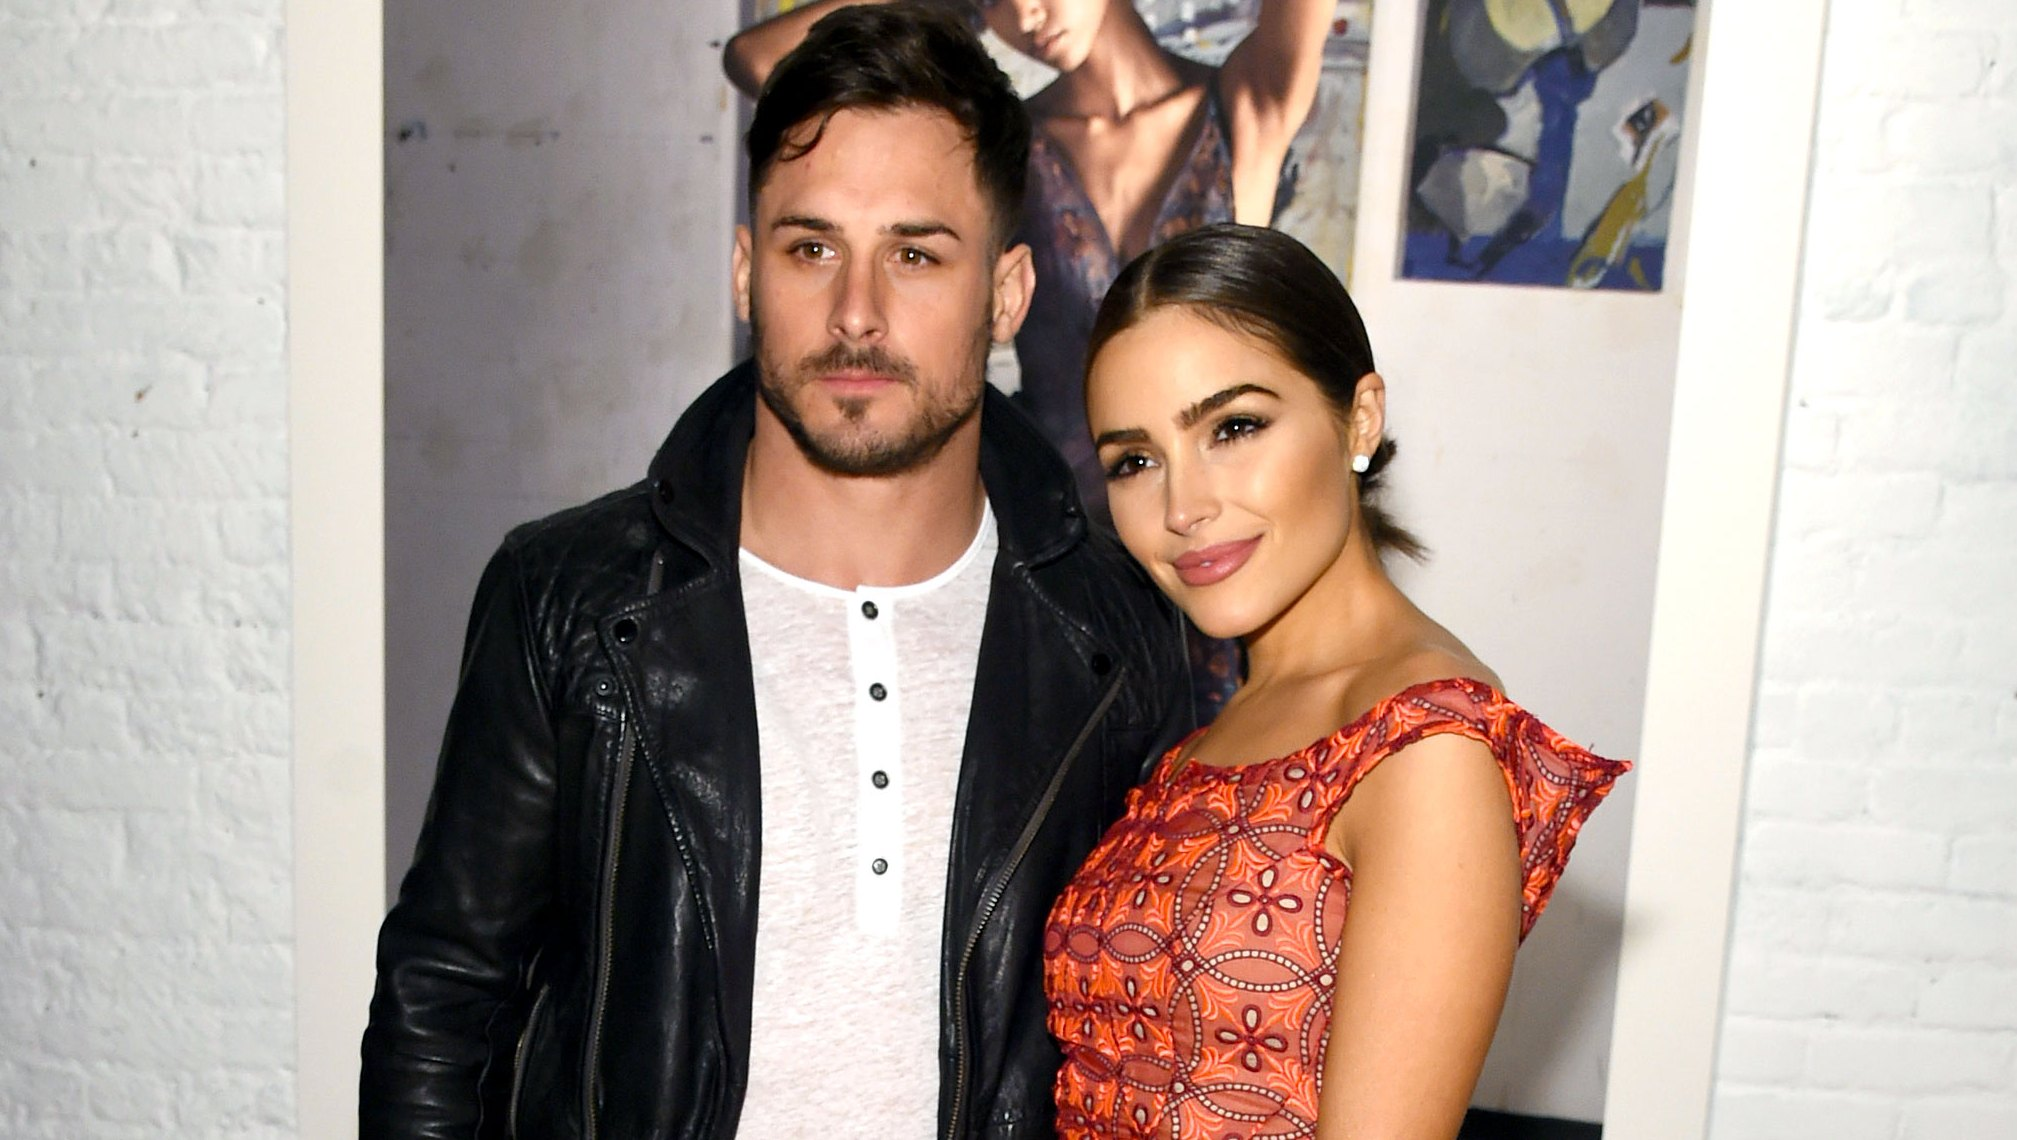 Danny Amendola Takes 'Blame' for 'Miscommunication' After Slamming Ex Olivia Culpo: 'I Tried to Clear the Air'